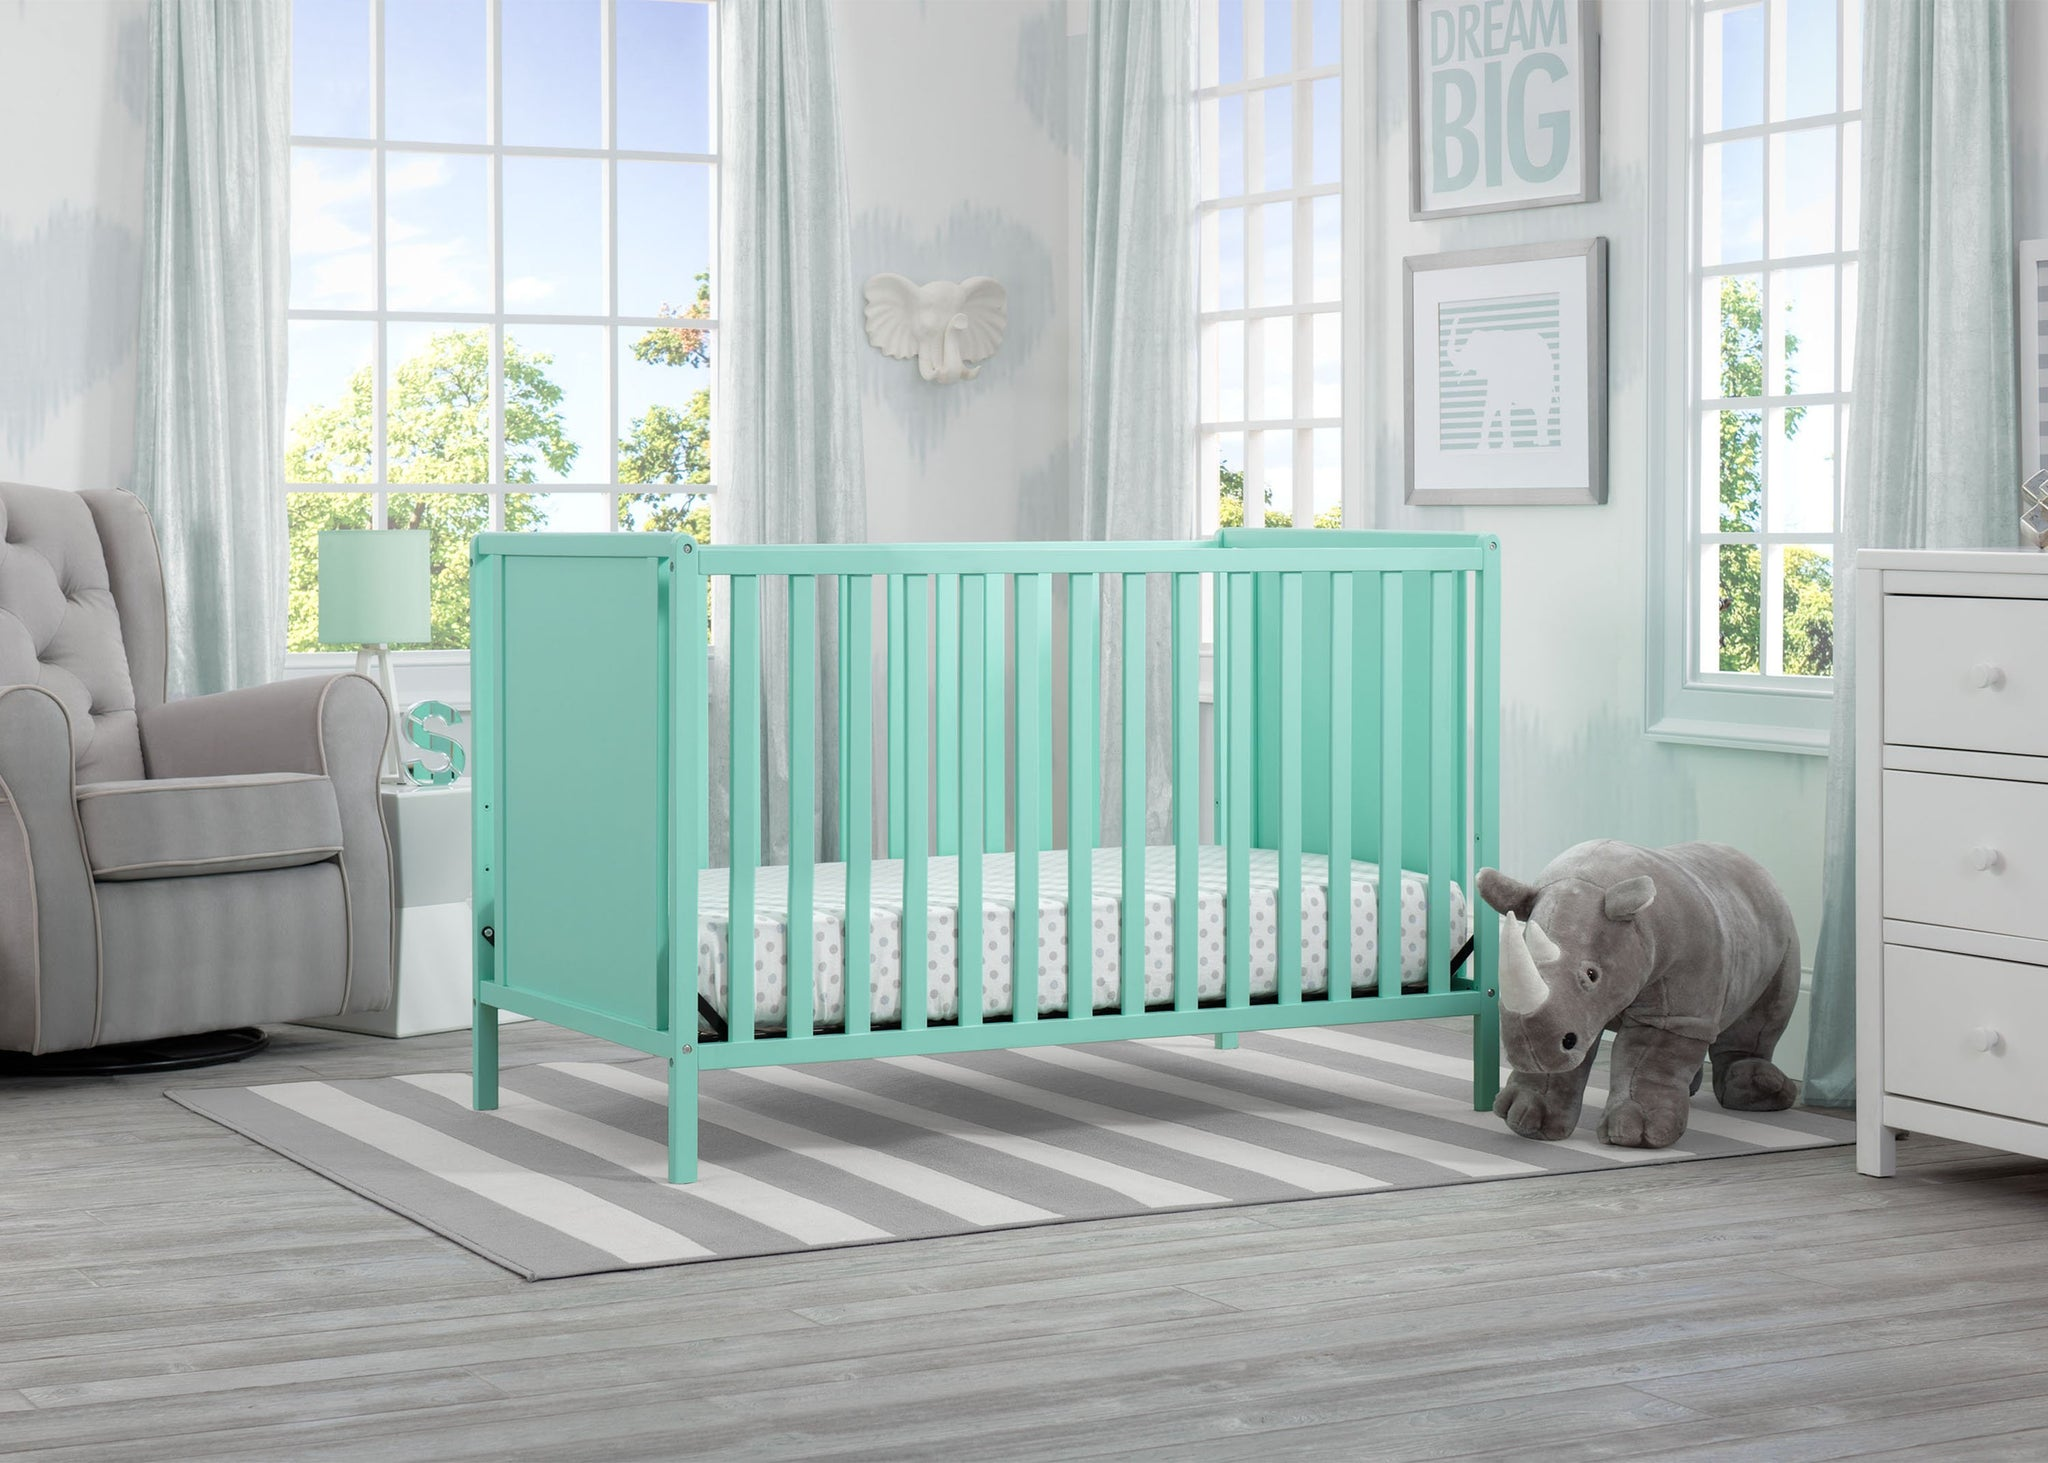 Delta Children Aqua (347) Heartland Classic 4-in-1 Convertible Crib, Room, e1e